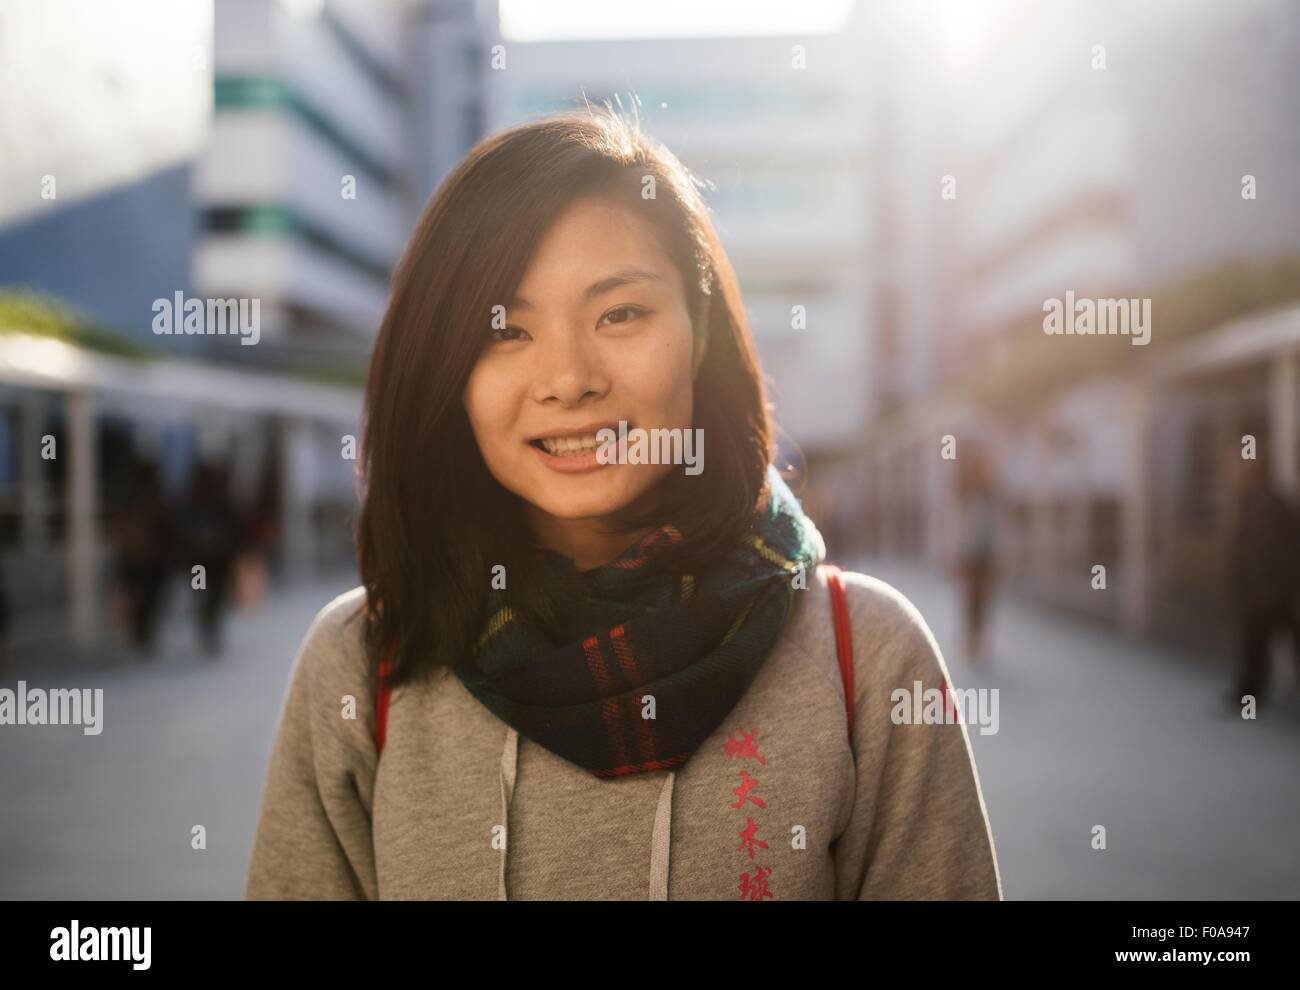 Portrait of young woman wearing hooded top et écharpe, smiling at camera Photo Stock